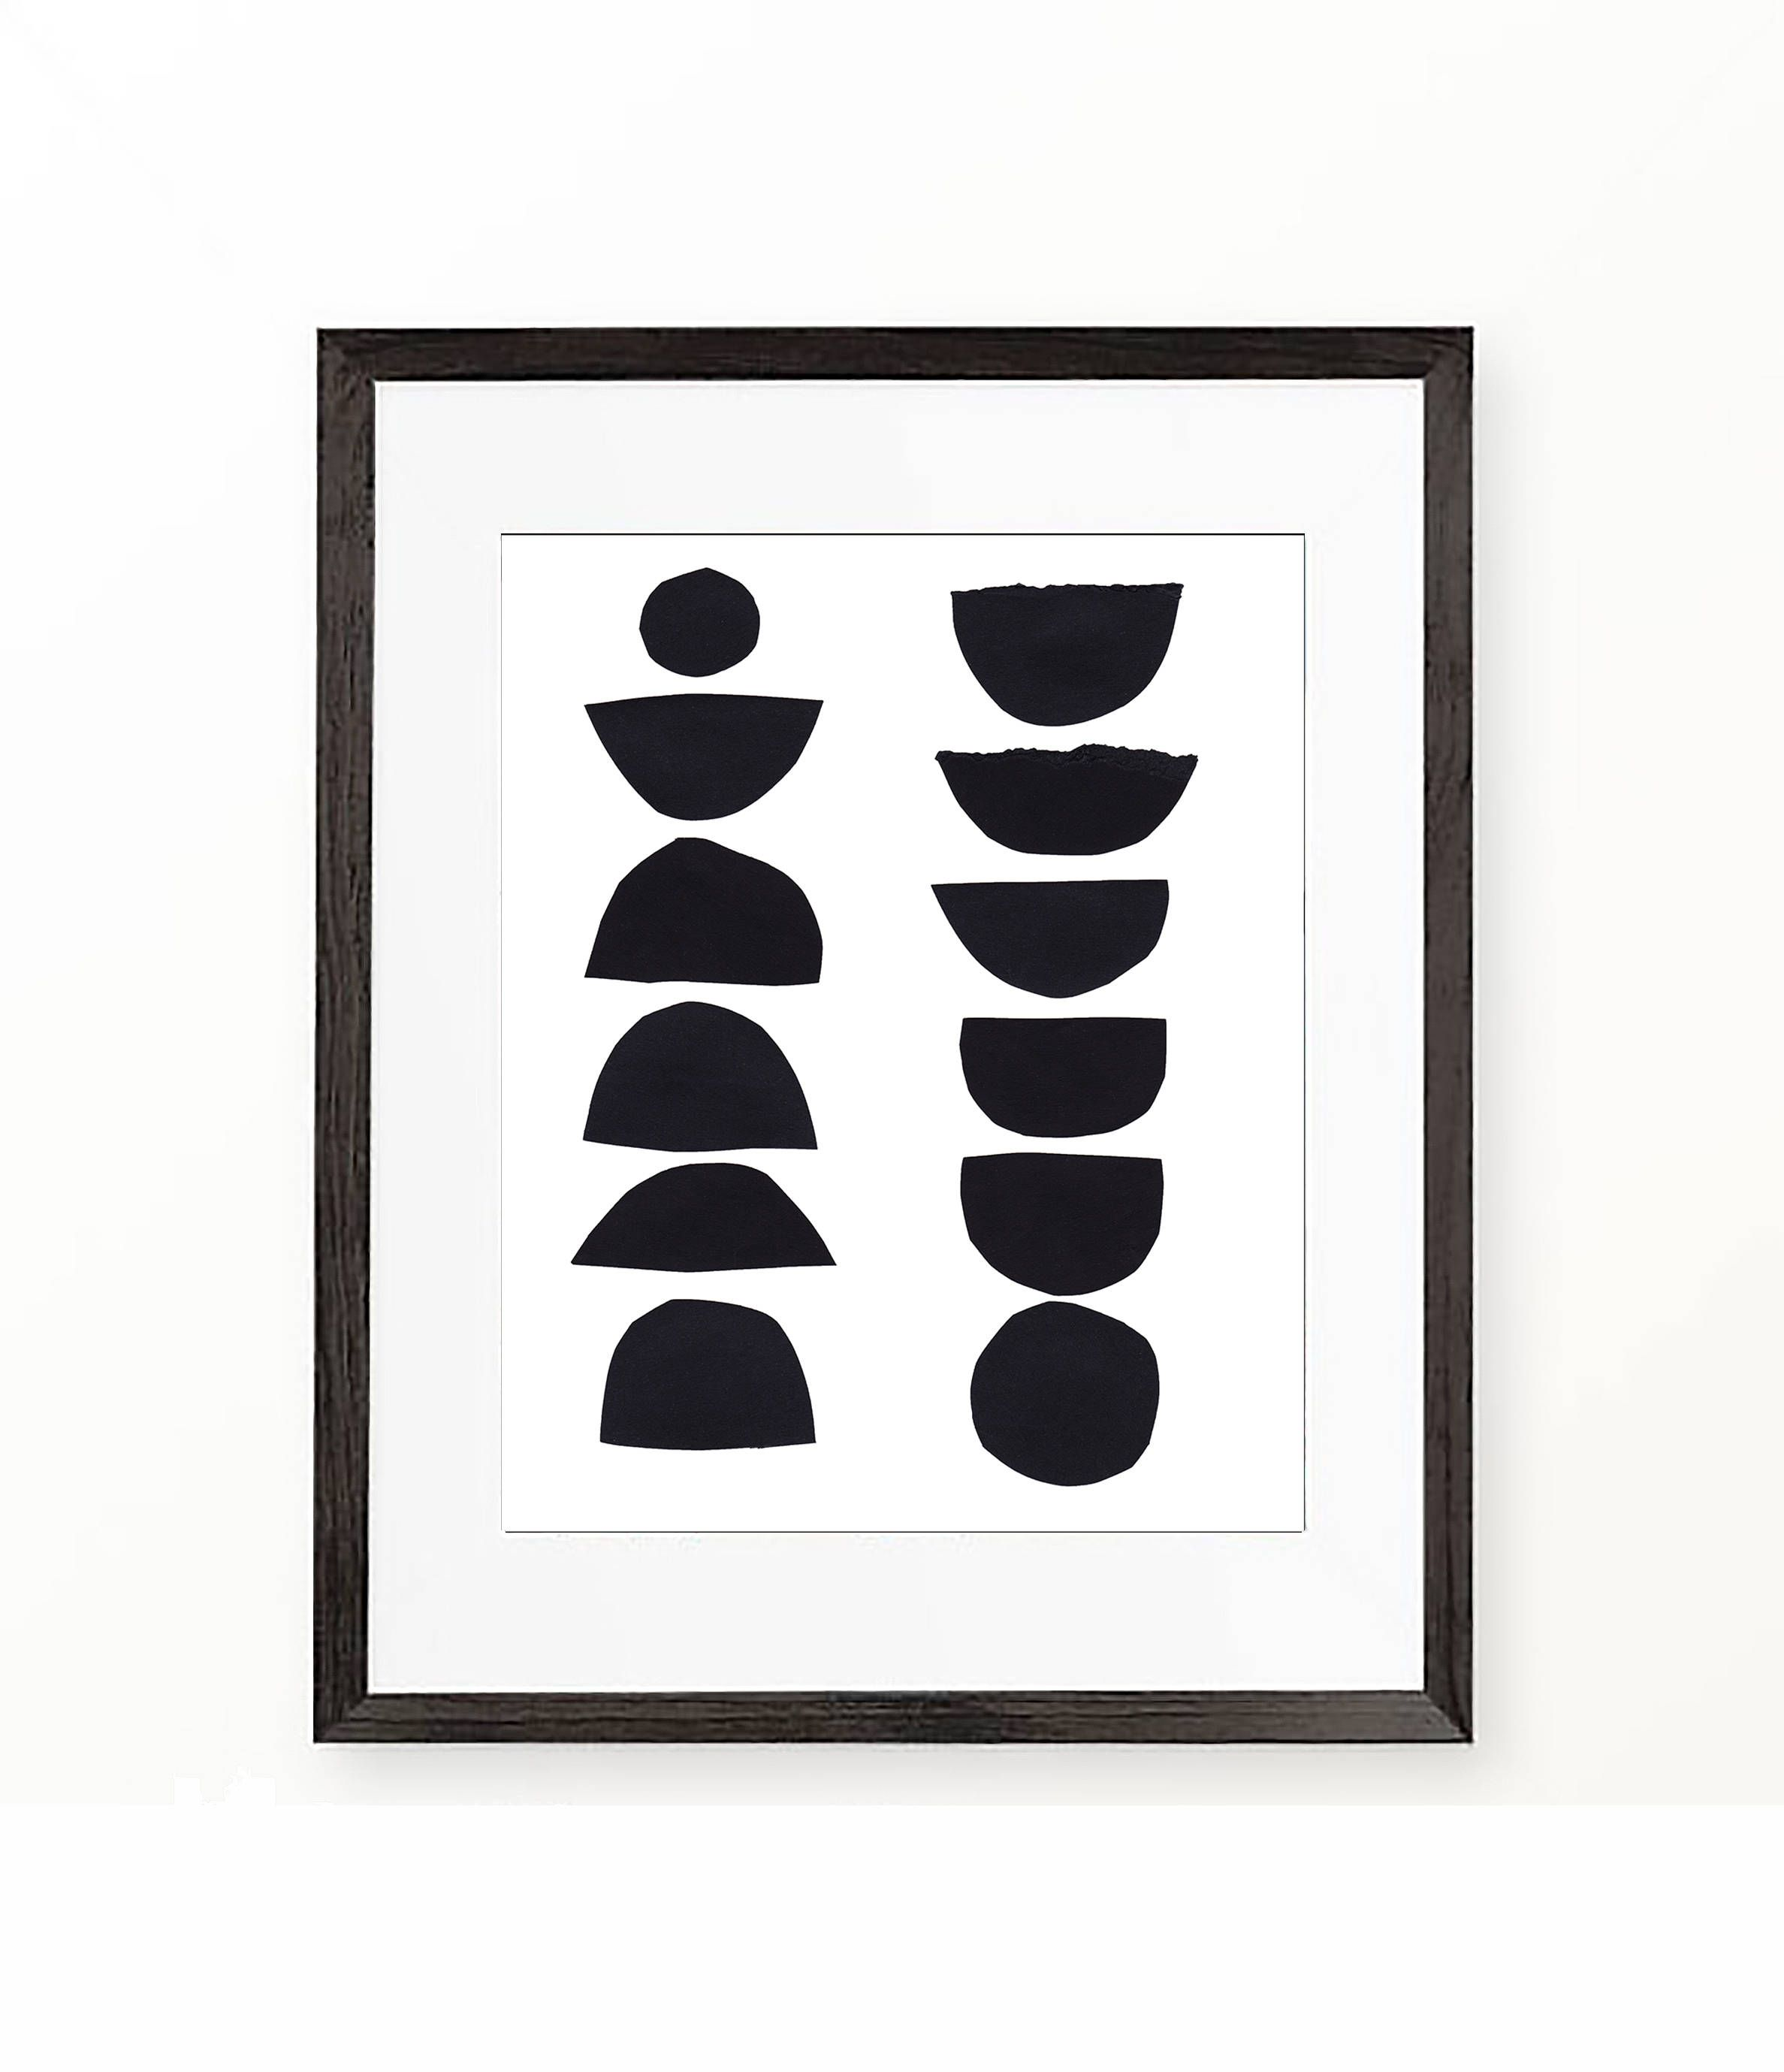 Black and white art geometric abstract art paper collage digital